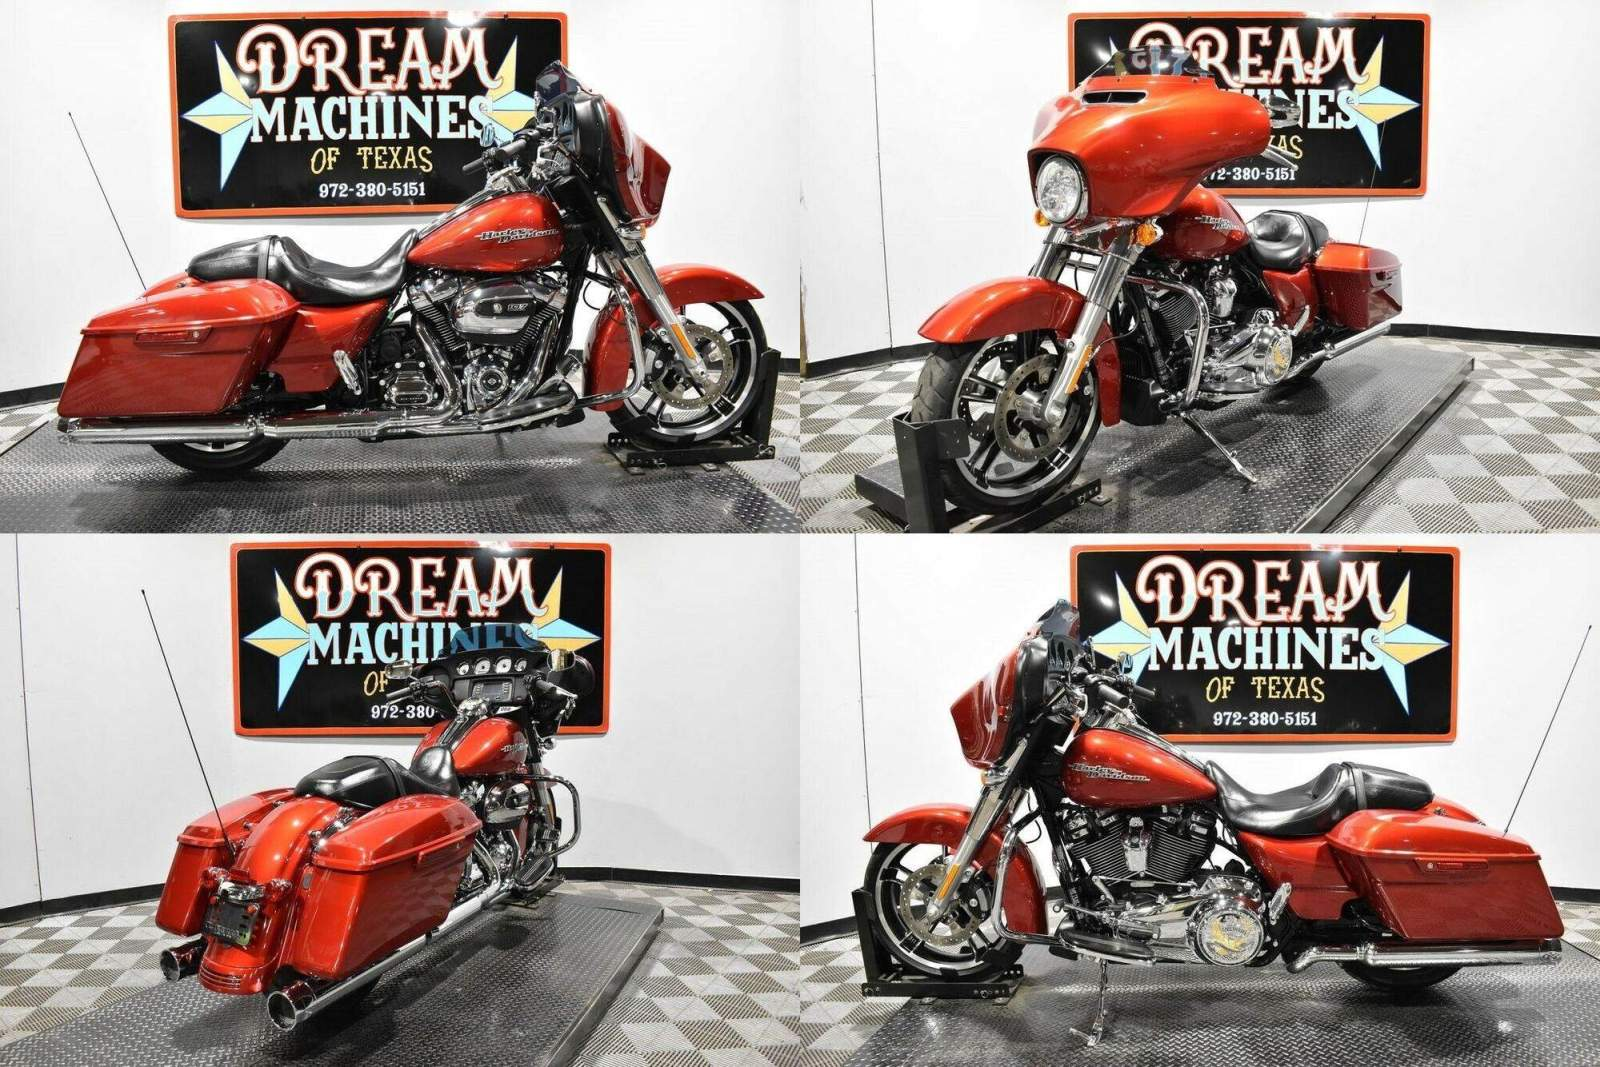 2018 Harley-Davidson FLHX - Street Glide Red used for sale craigslist